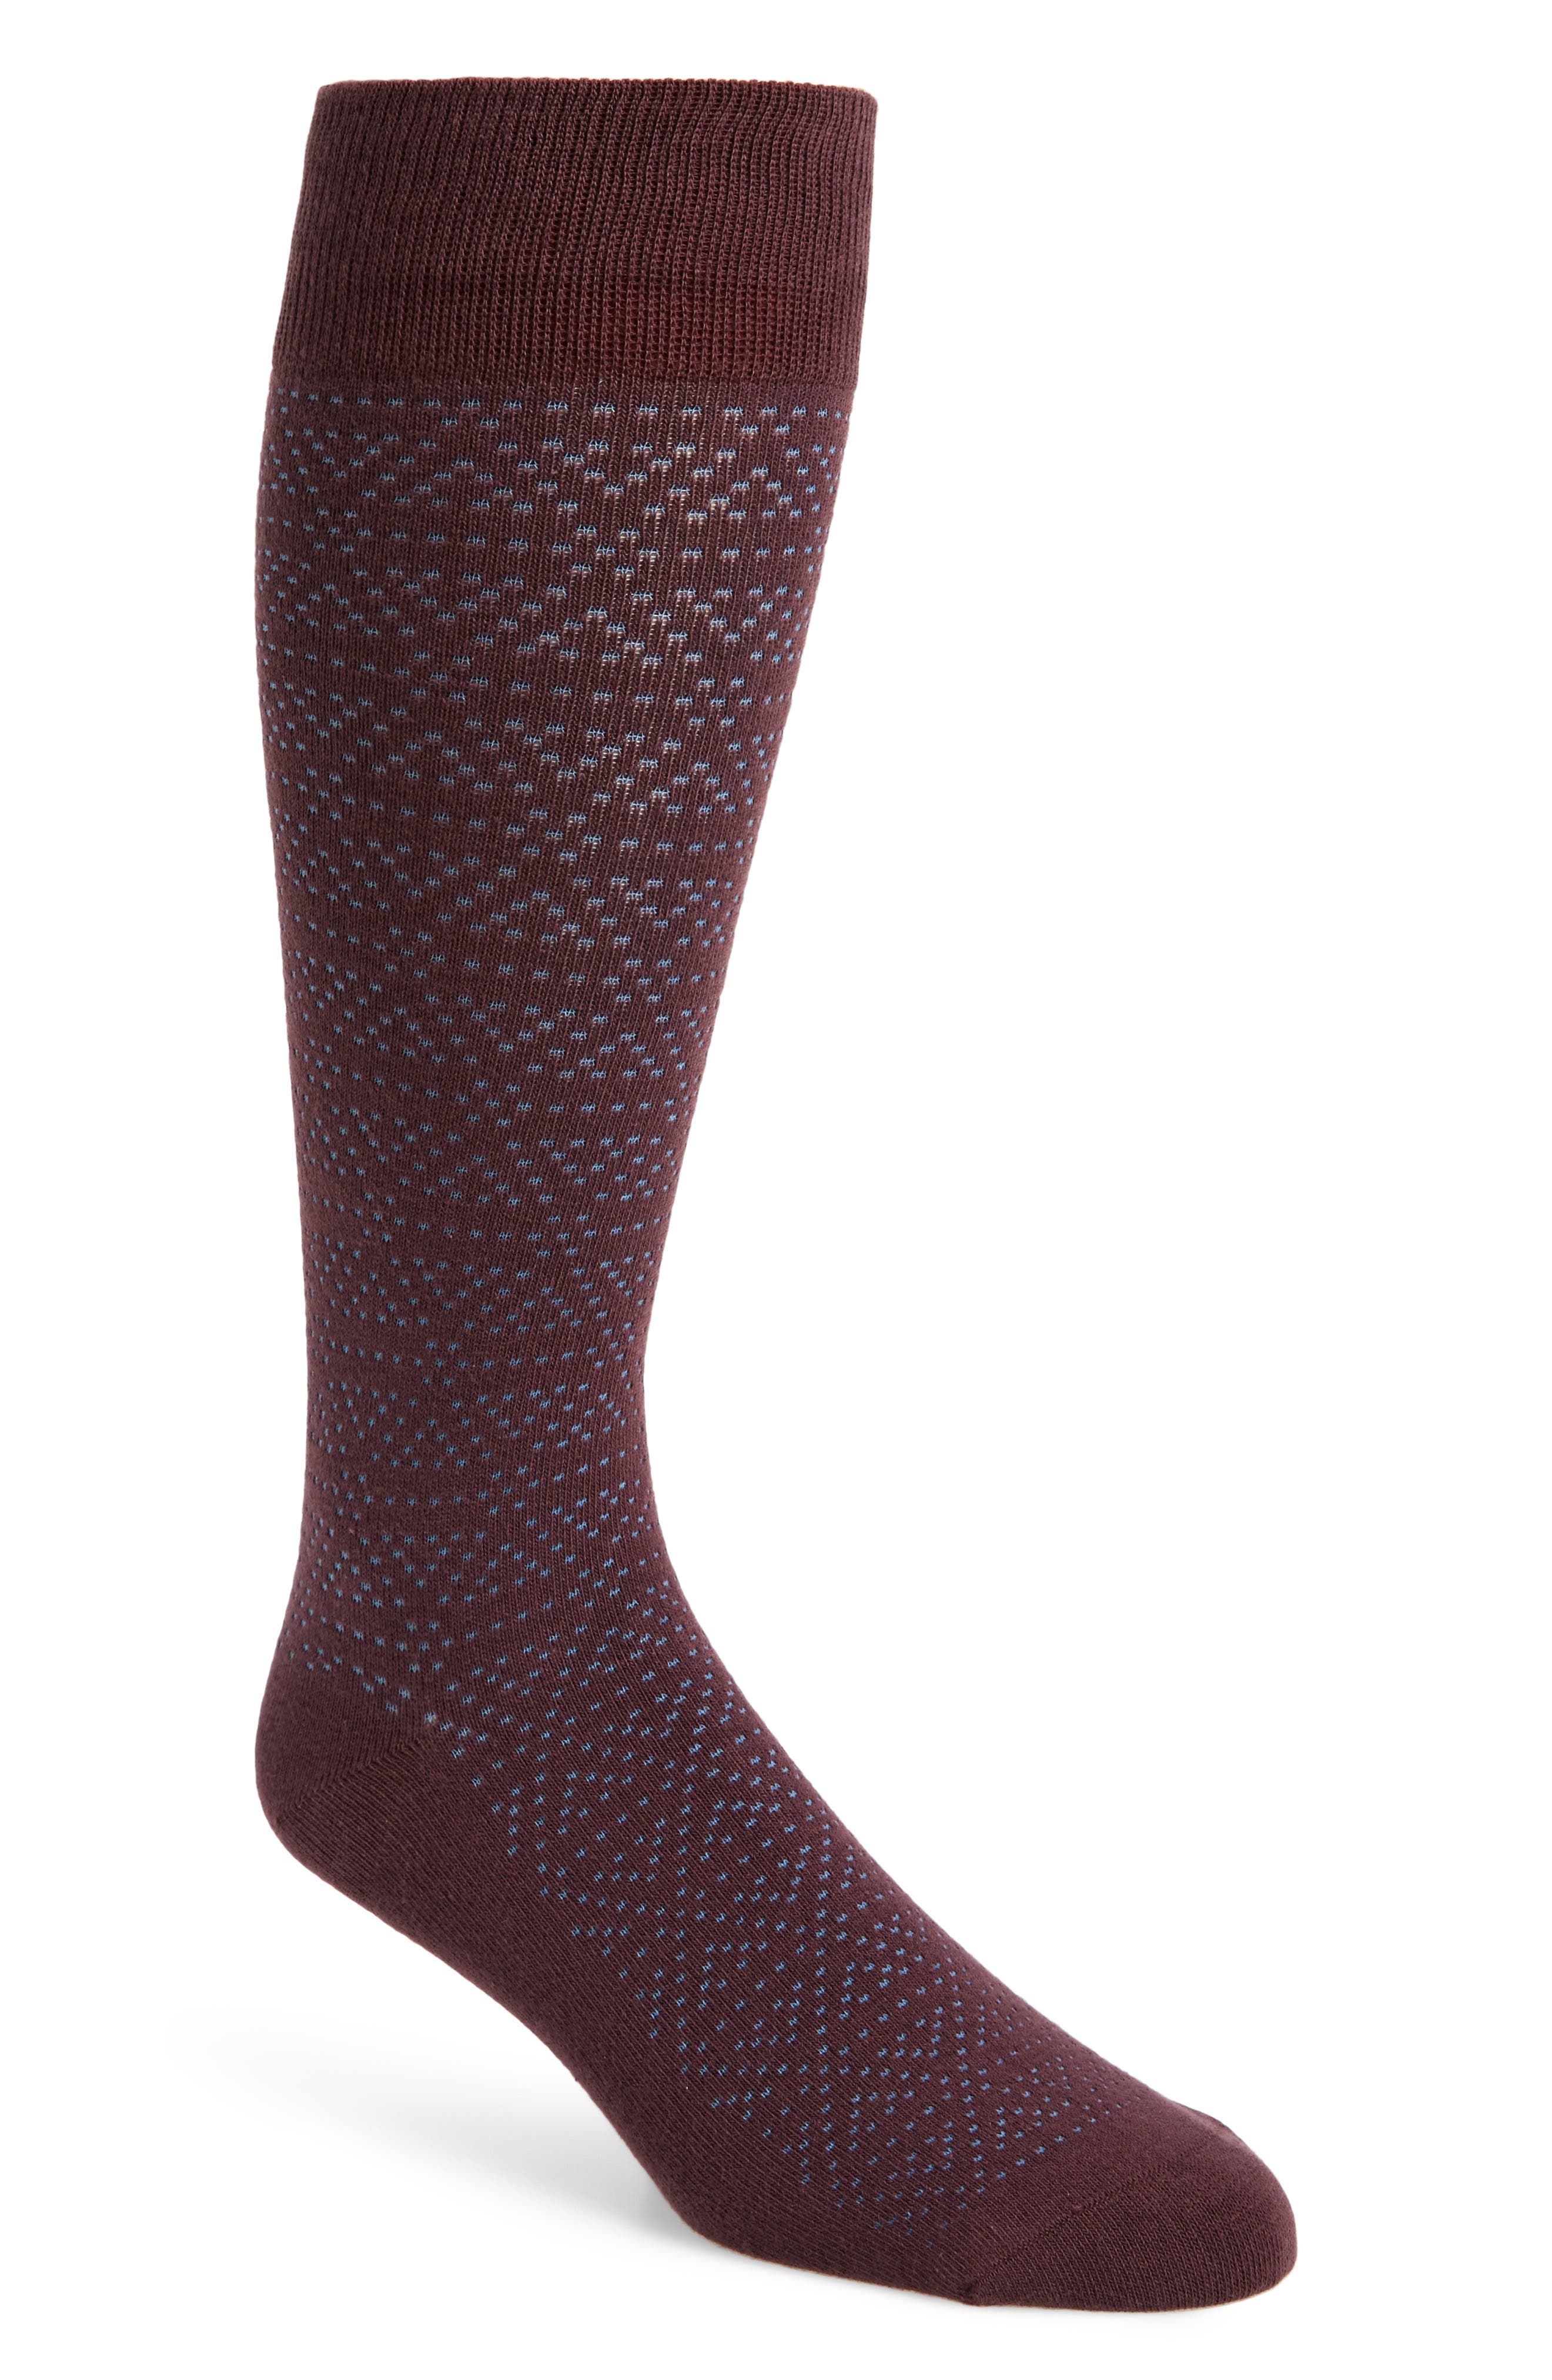 Plaited Triangle Socks,                             Main thumbnail 1, color,                             Burgundy